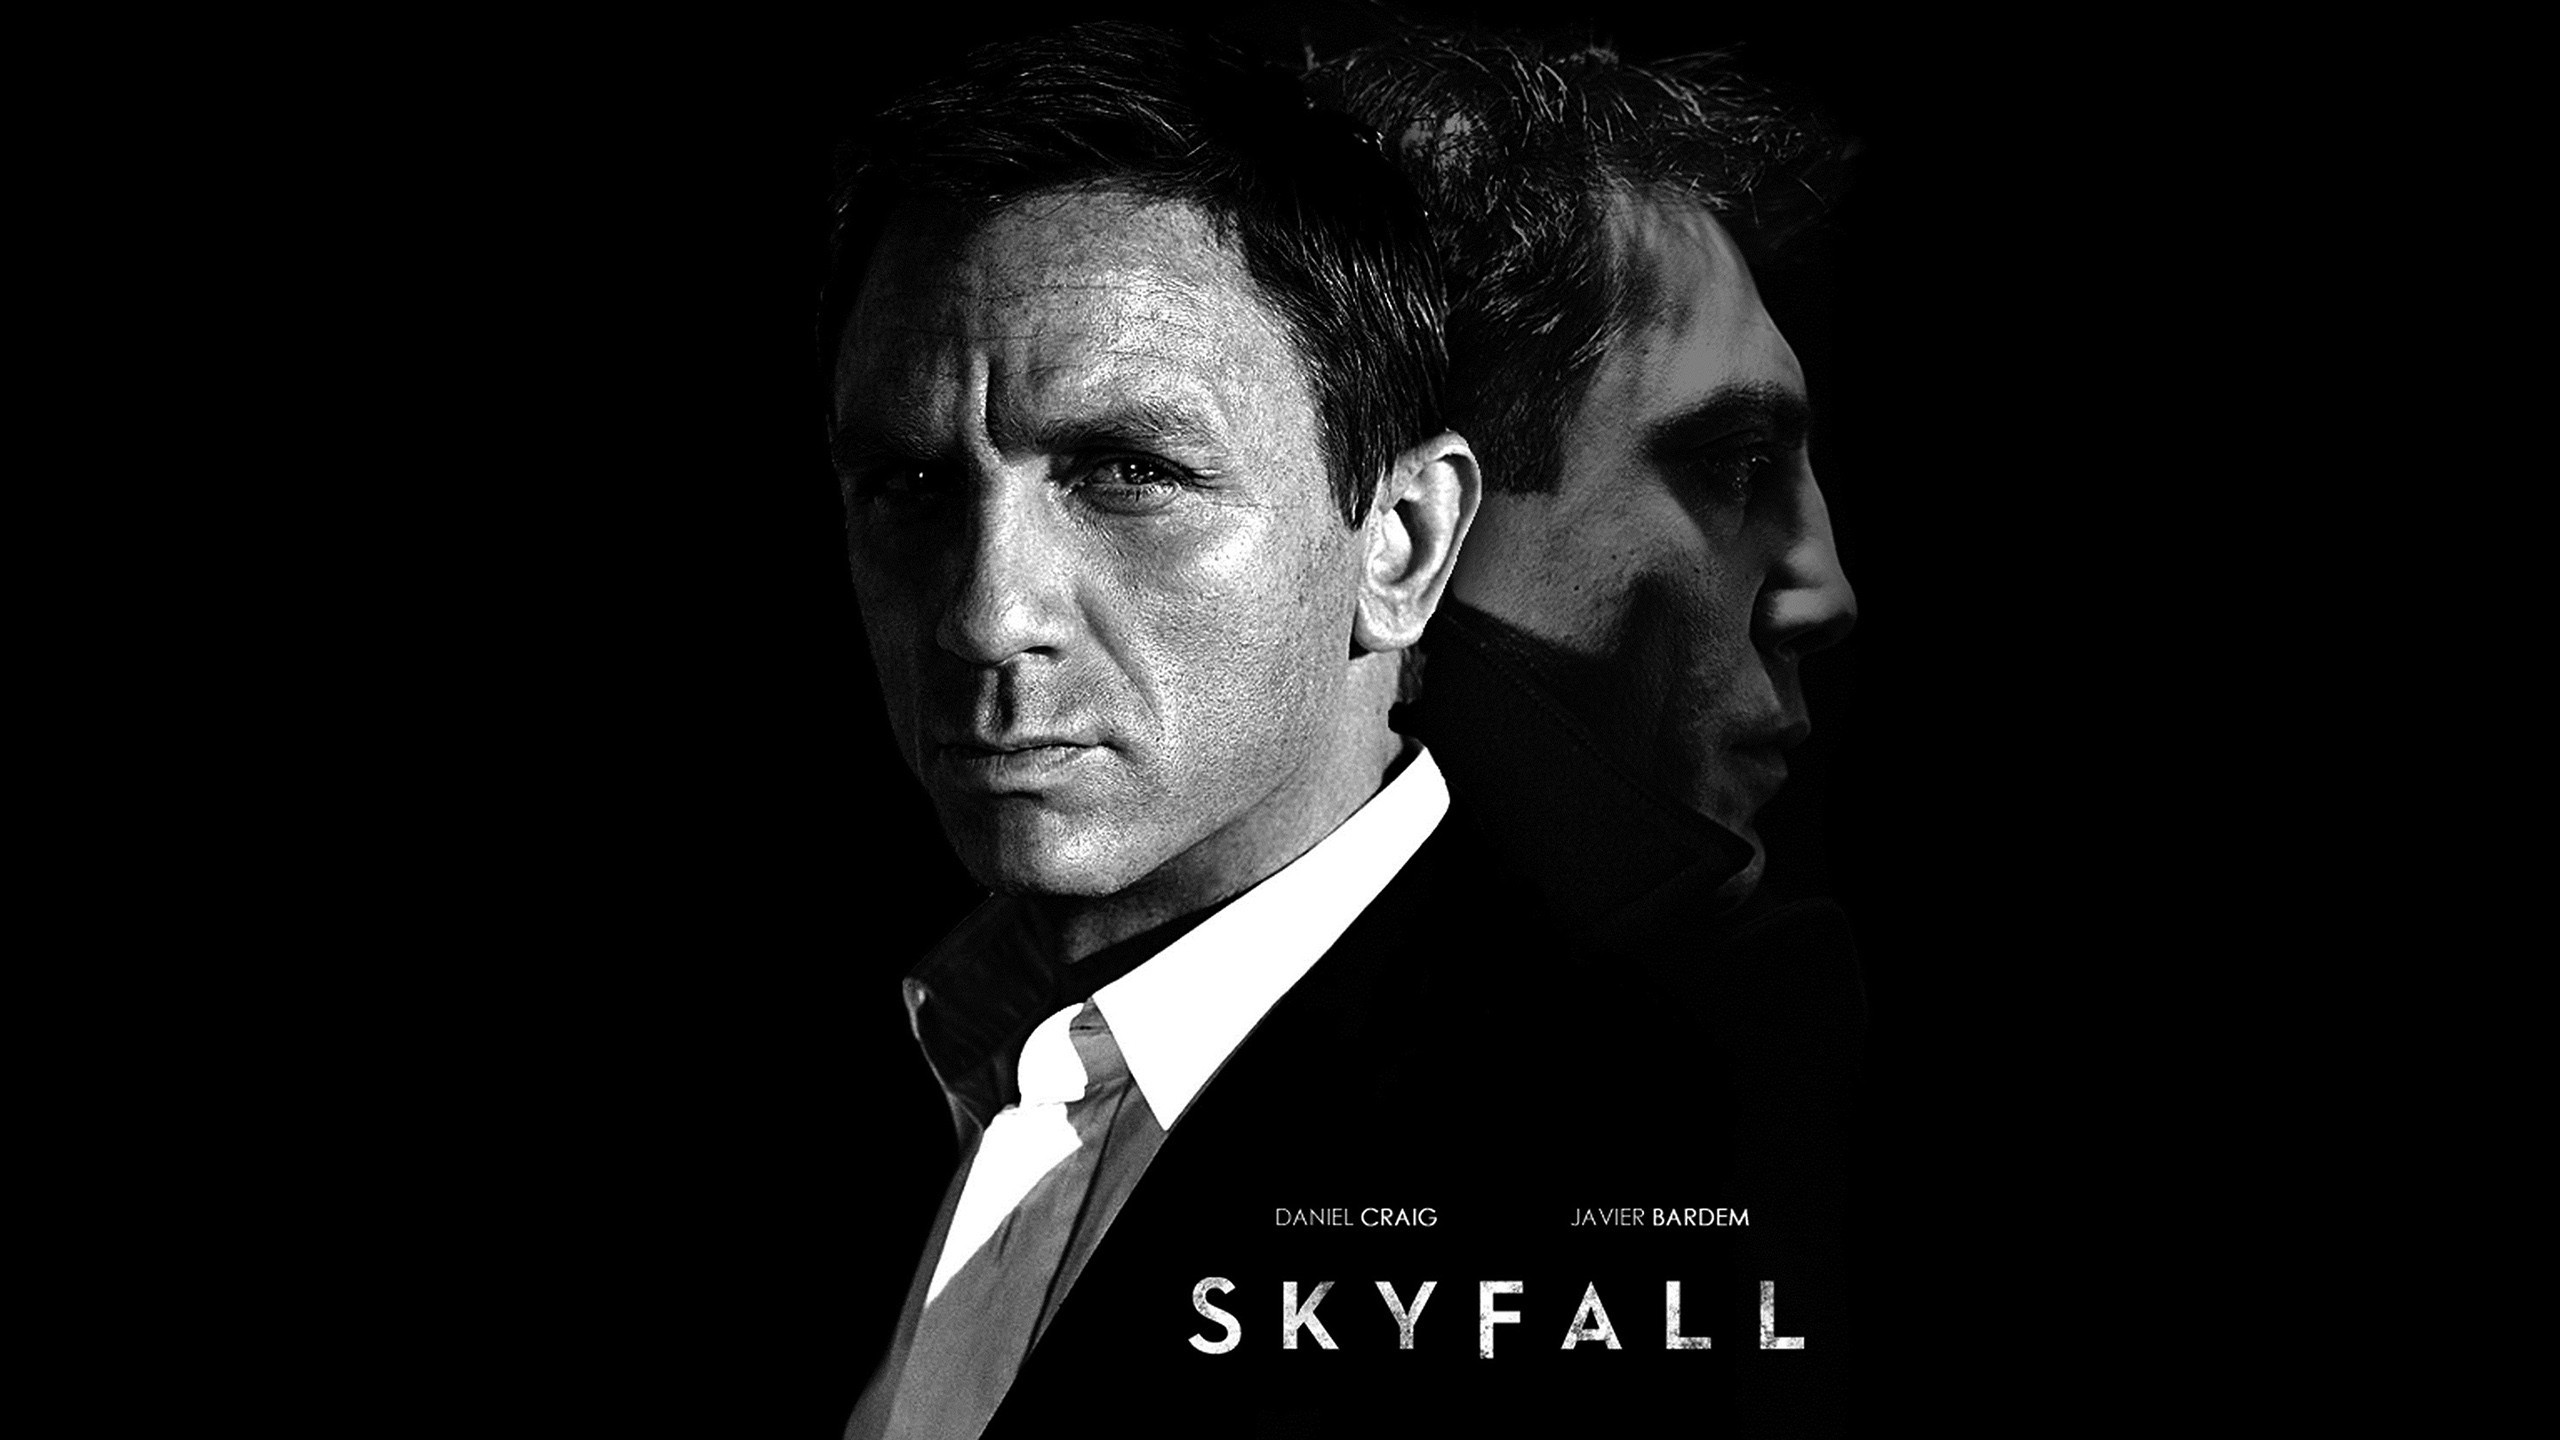 movies james bond daniel craig javier bardem skyfall wallpaper